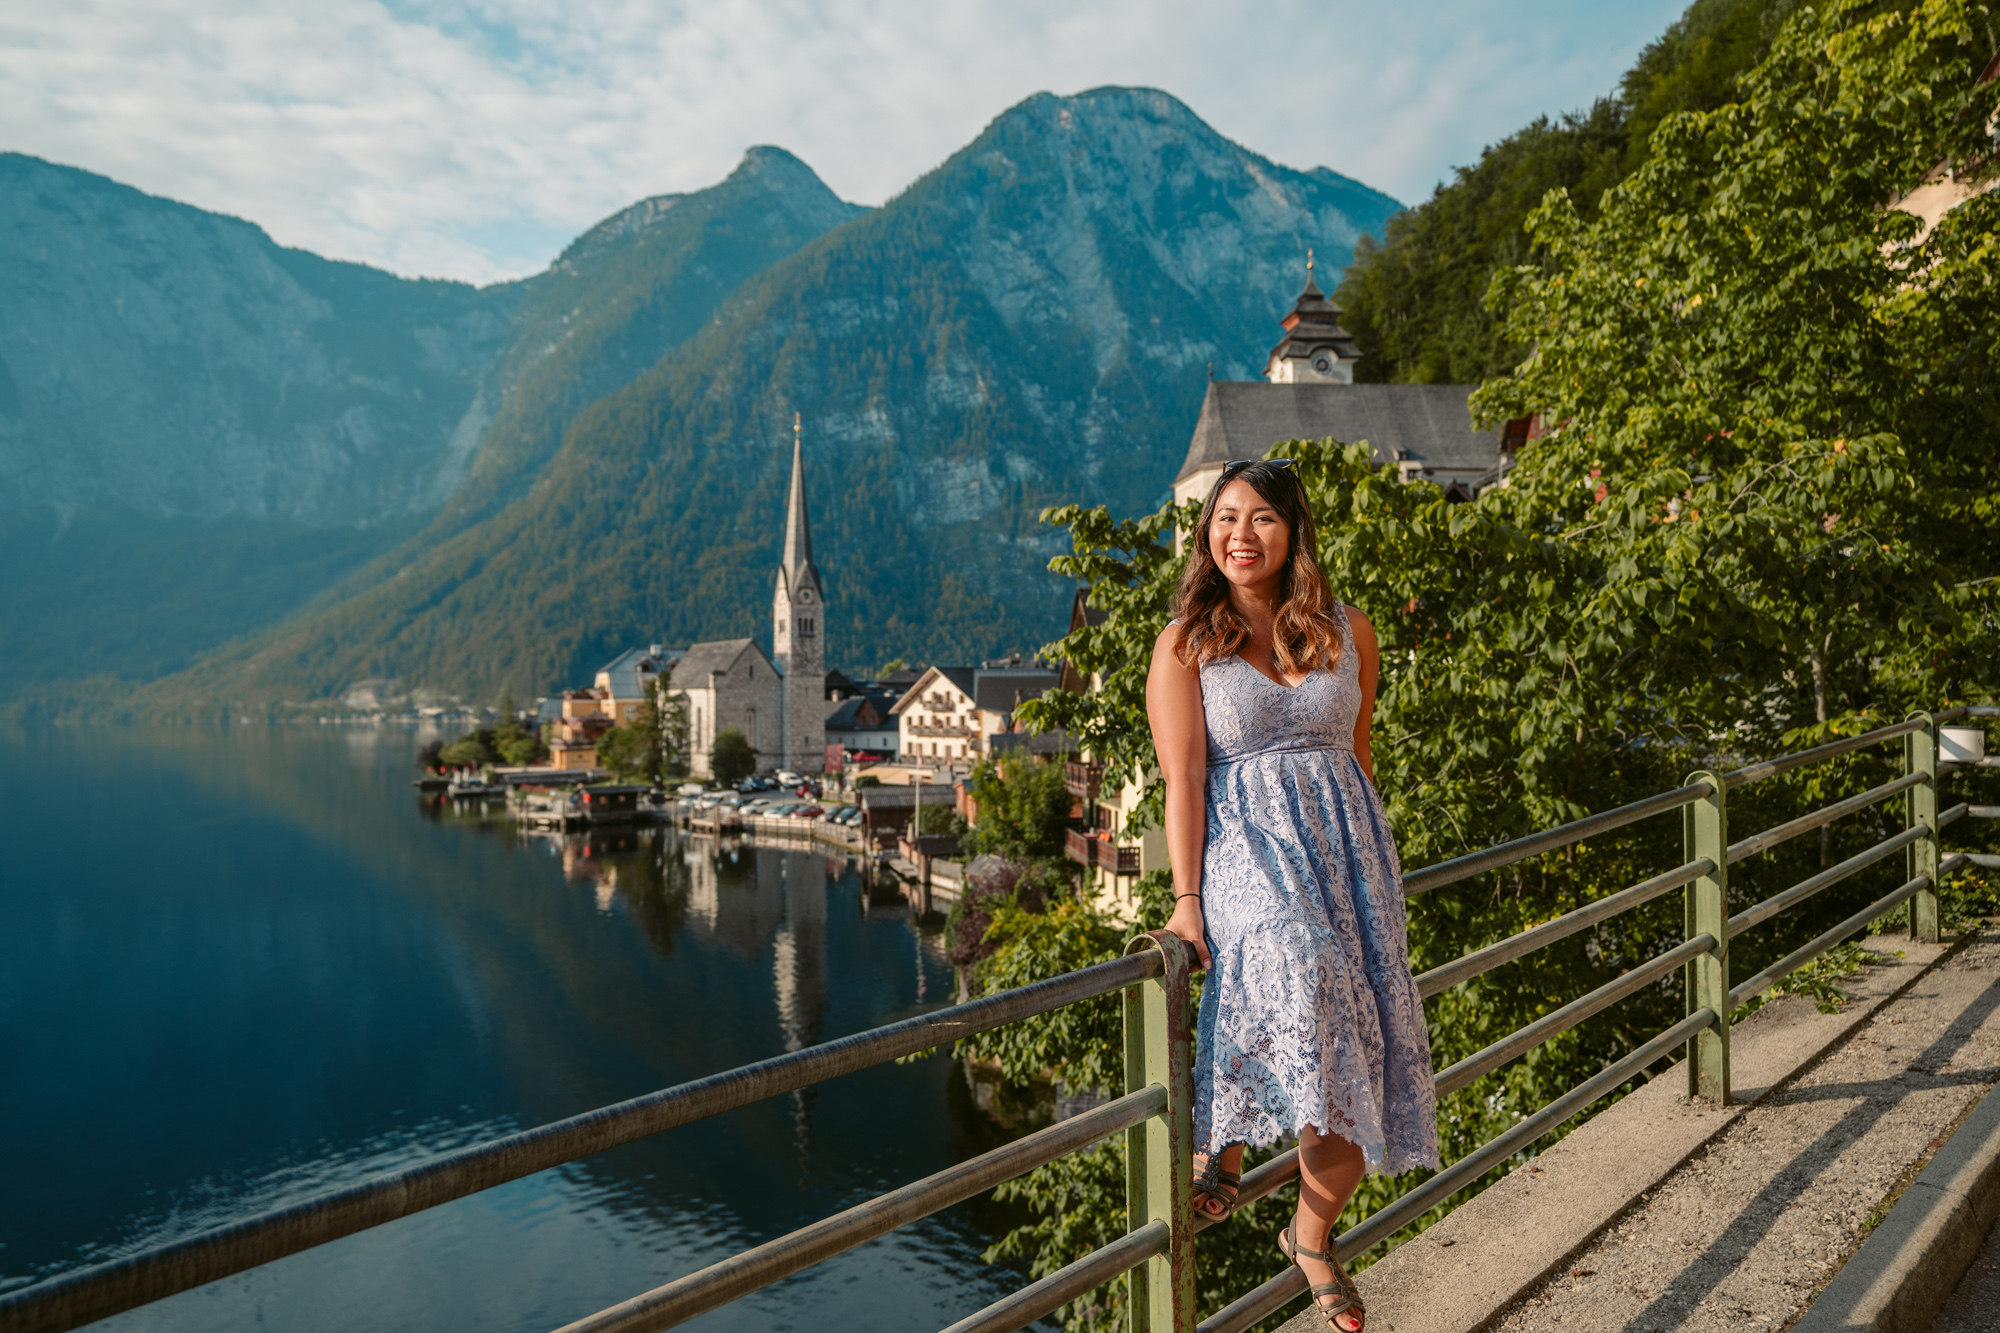 Iconic postcard view of Hallstatt, Austria featuring travel blogger Christina Guan from Happy to Wander.